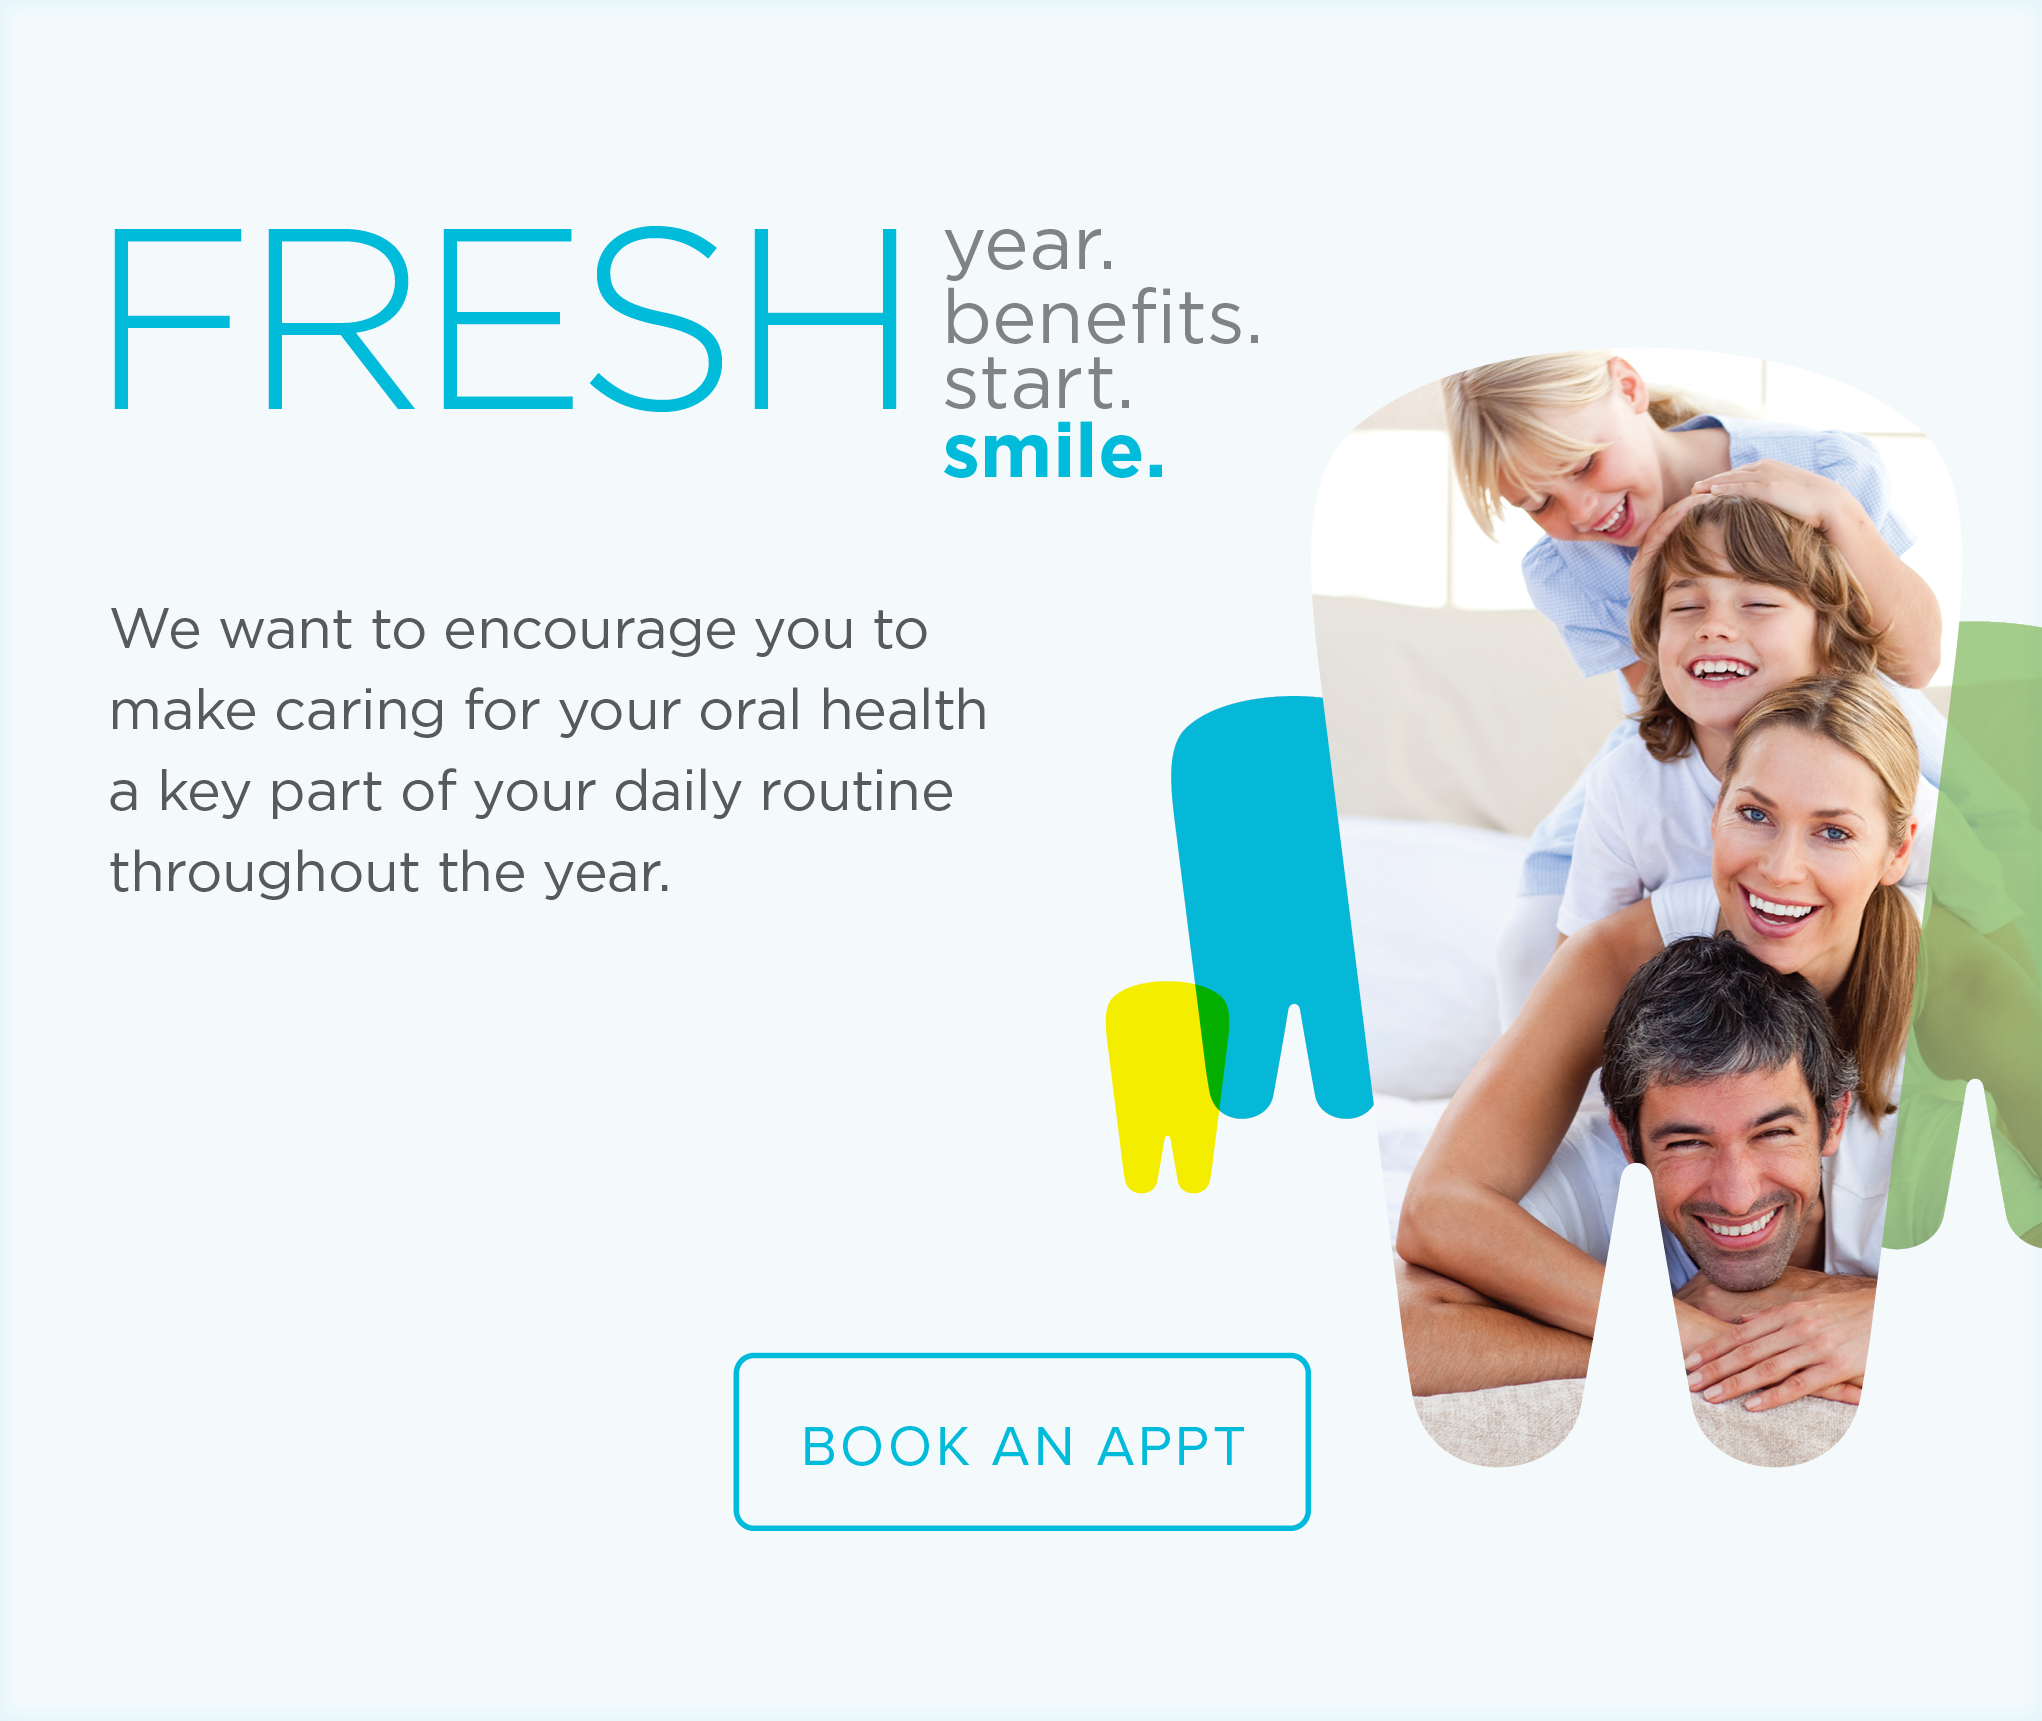 Hiram Dental Group - Make the Most of Your Benefits